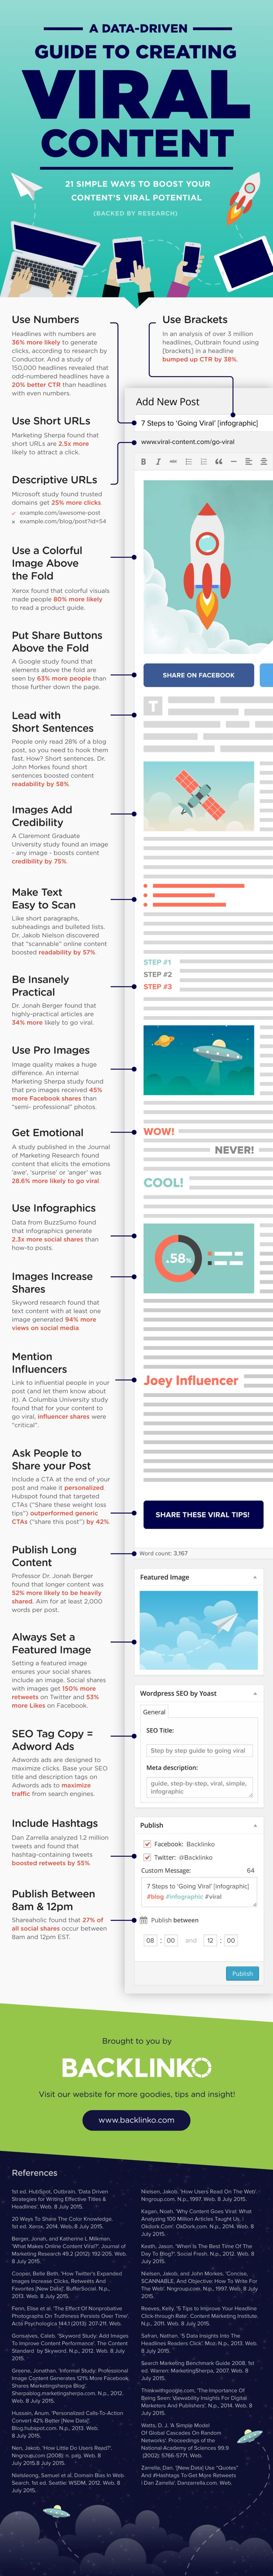 What Are 21 Data Driven Tips To Help Your Content Go Viral? #infographic